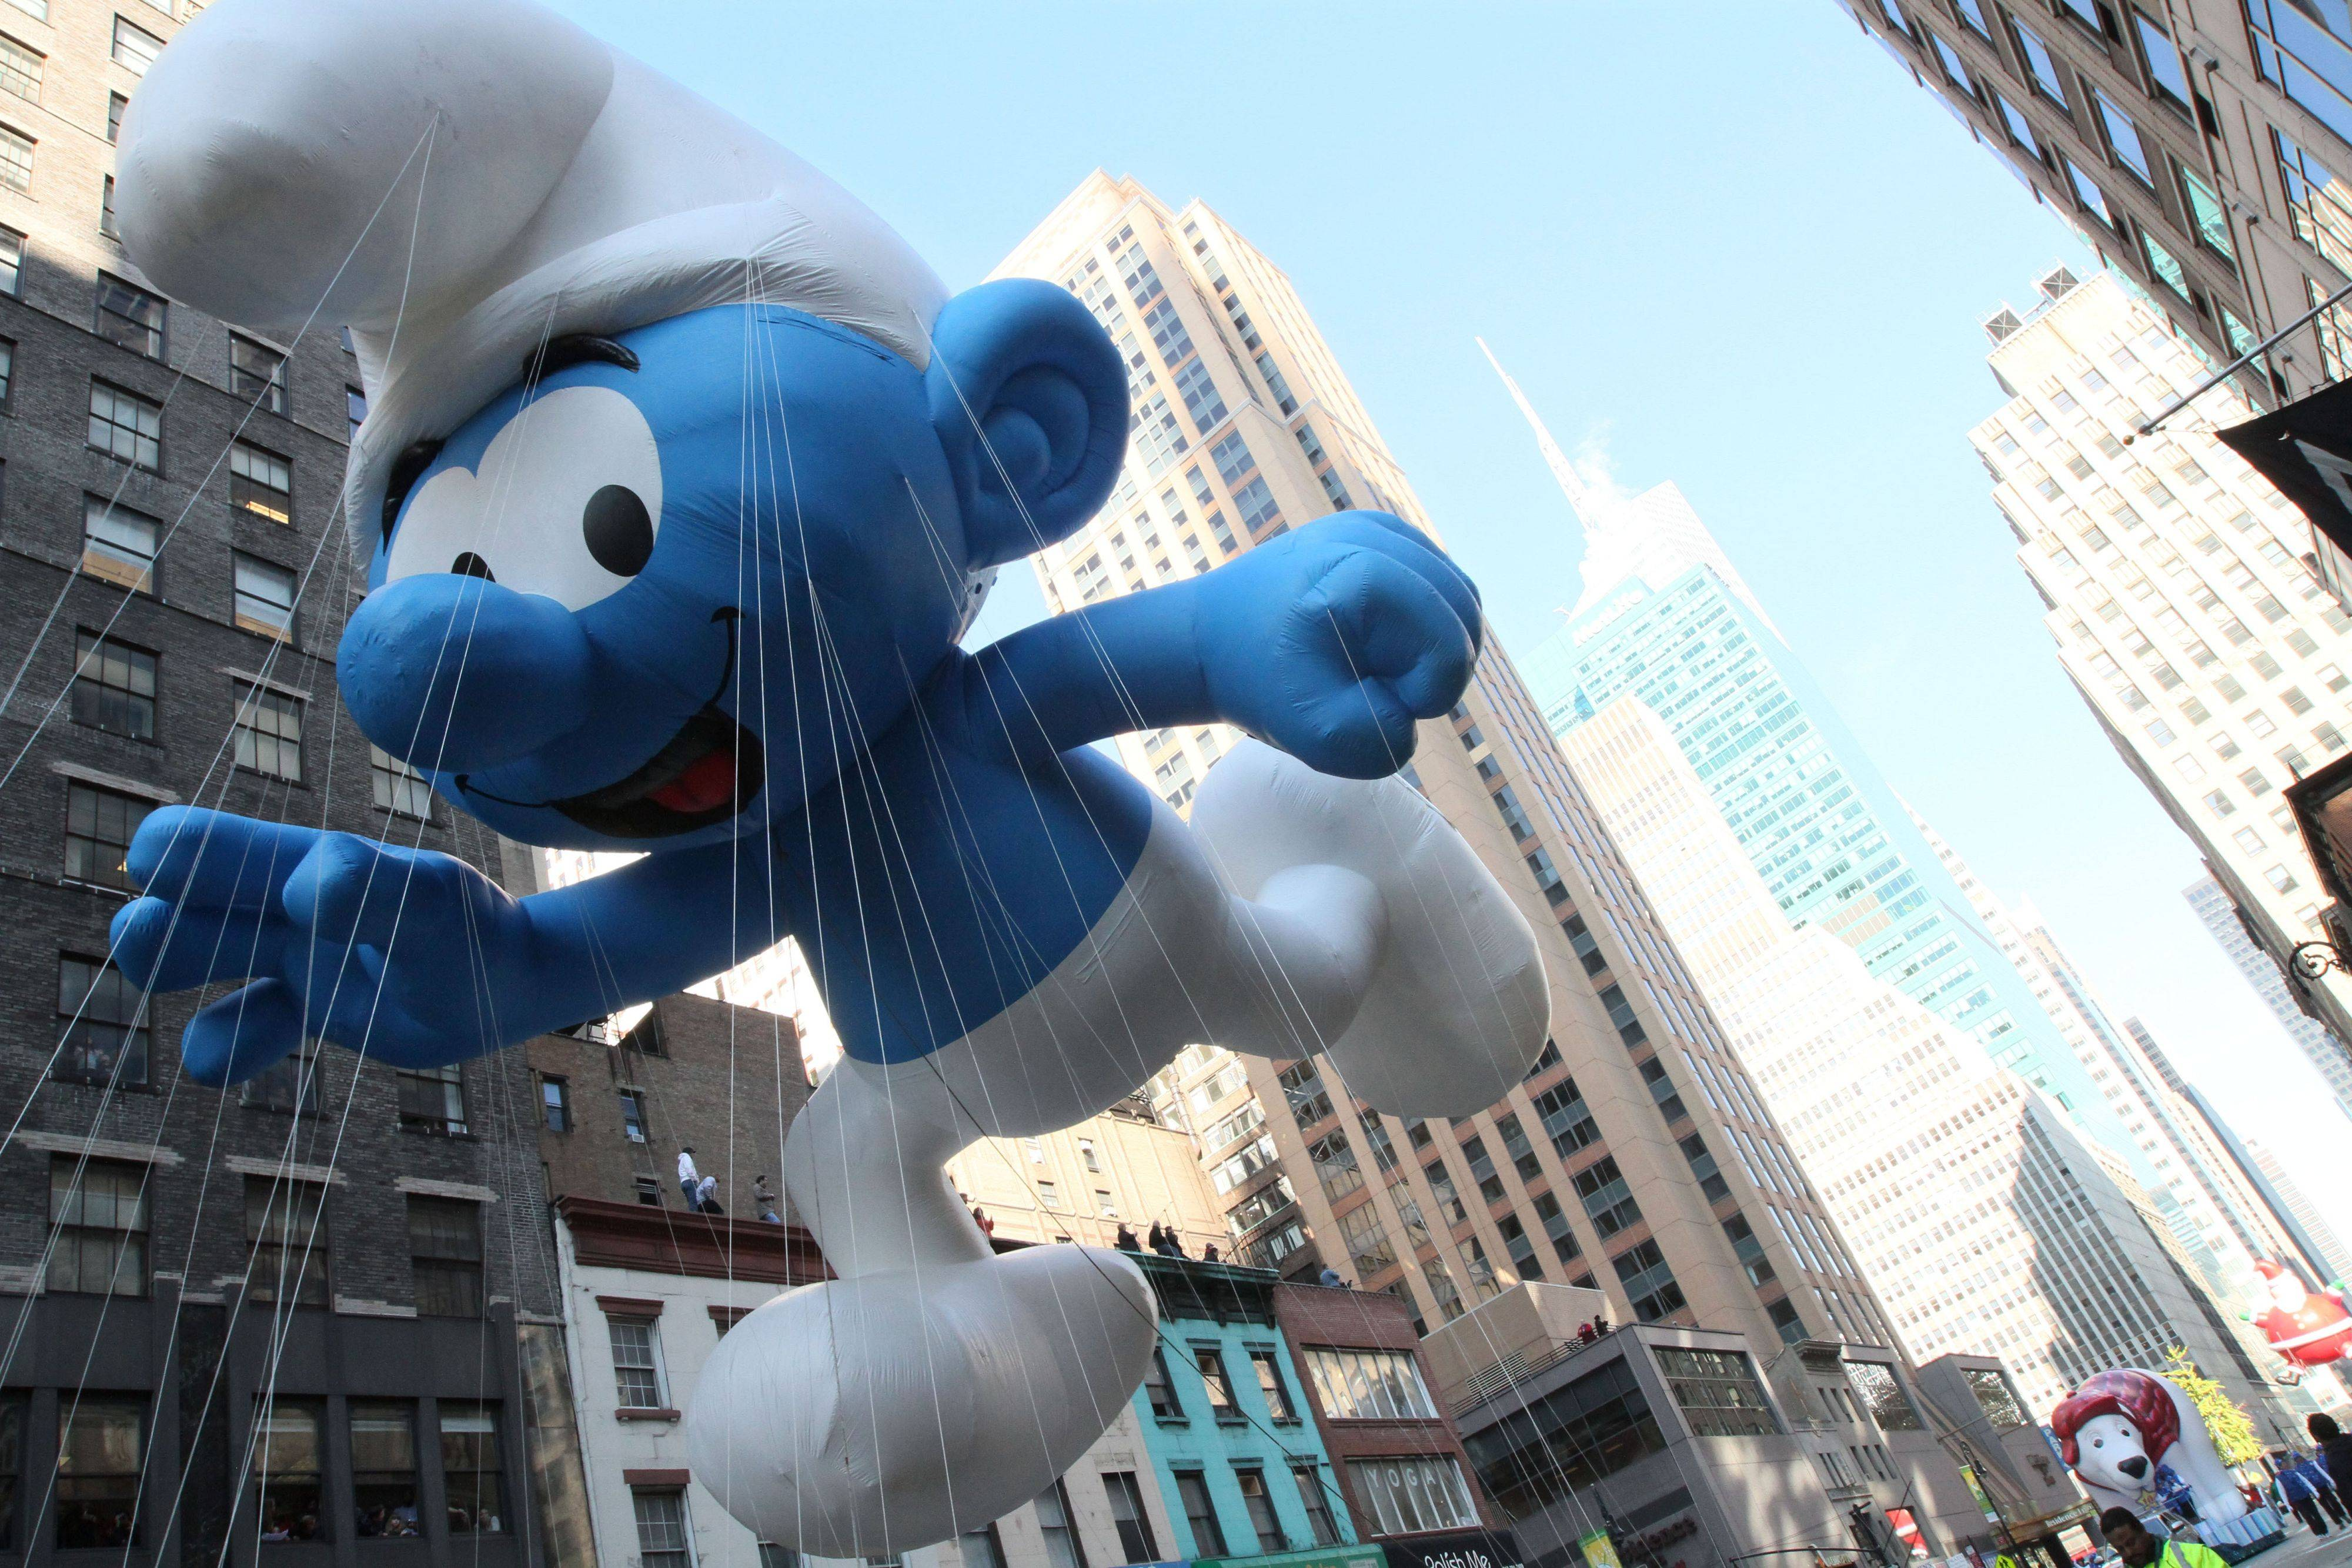 The Smurf balloon makes its way down New York's Sixth Avenue as it takes part in the 85th Annual Macy's Thanksgiving Day Parade Thursday Nov. 24, 2011.